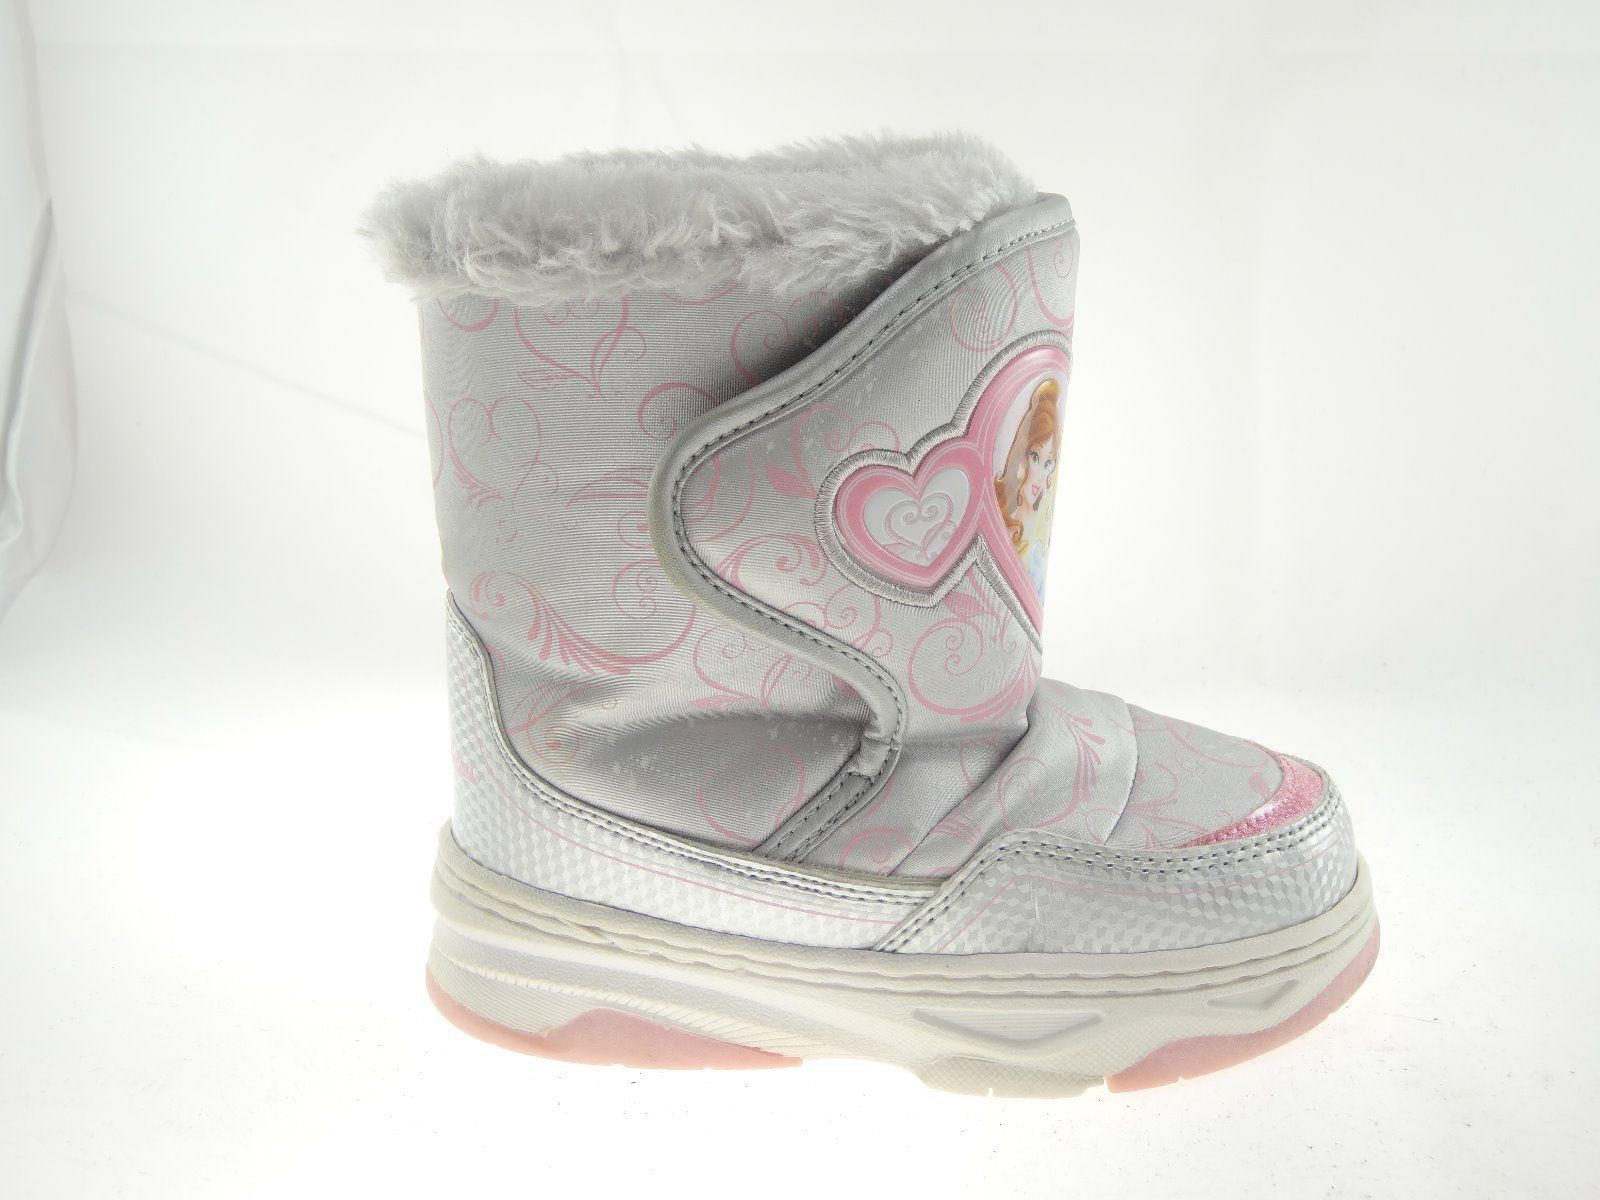 Disney Nala Silver Gray Size 9/10 Girls Princess Winter & Snow Boots image 4